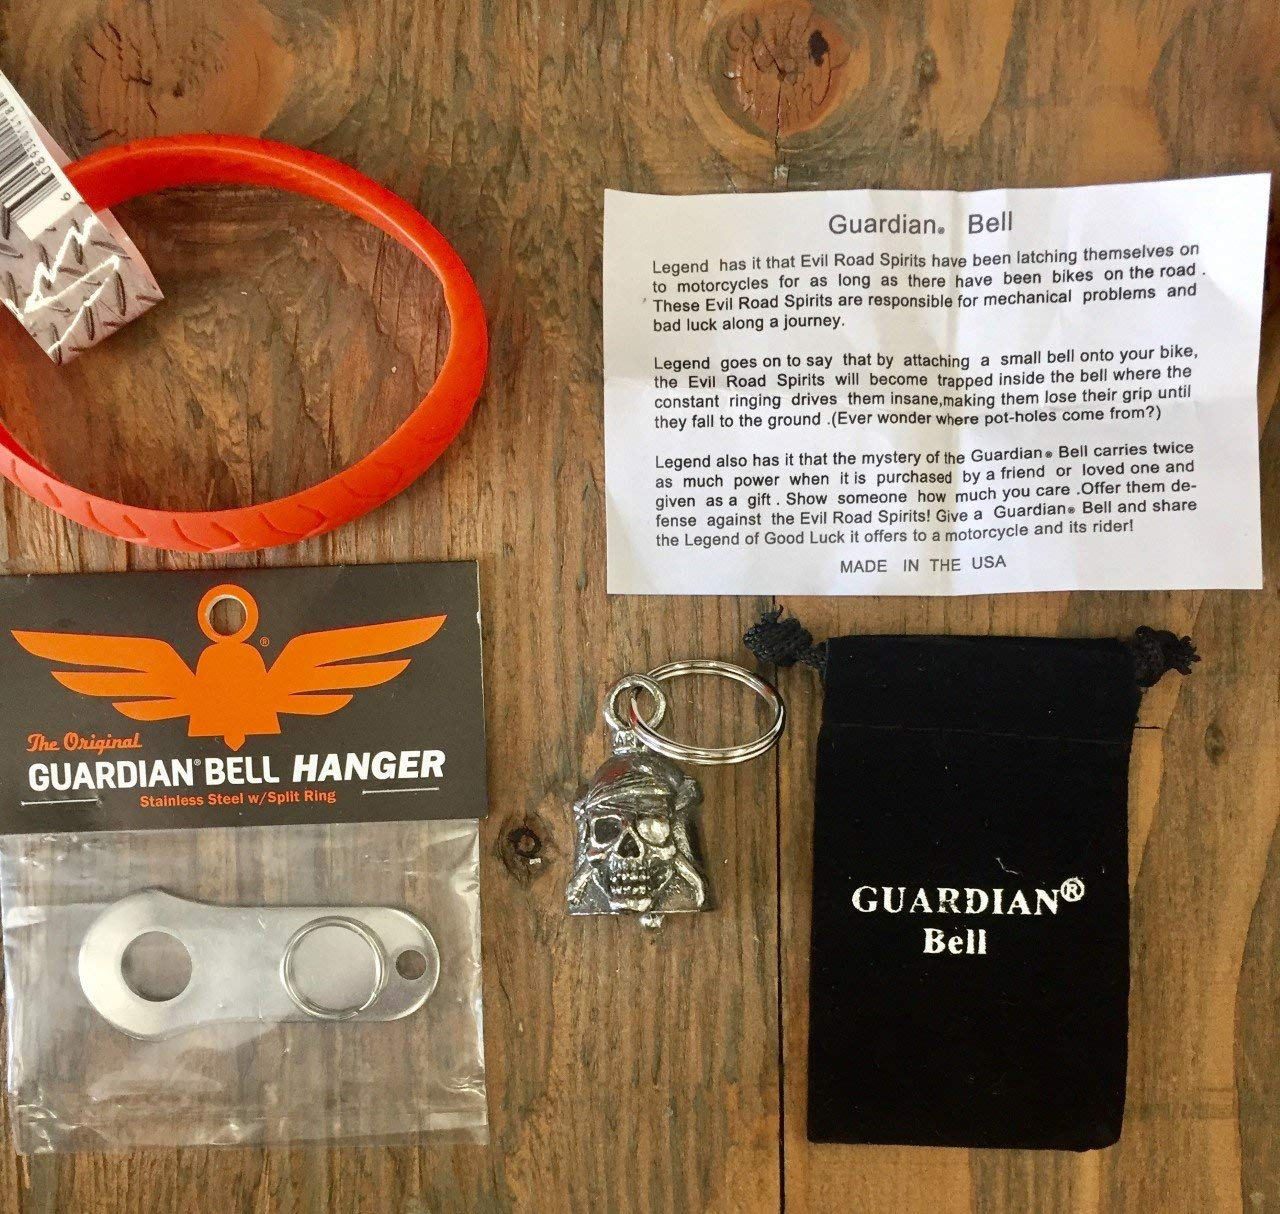 Guardian® Bell PIRATE COMPLETE KIT W/HANGER & WRISTBAND